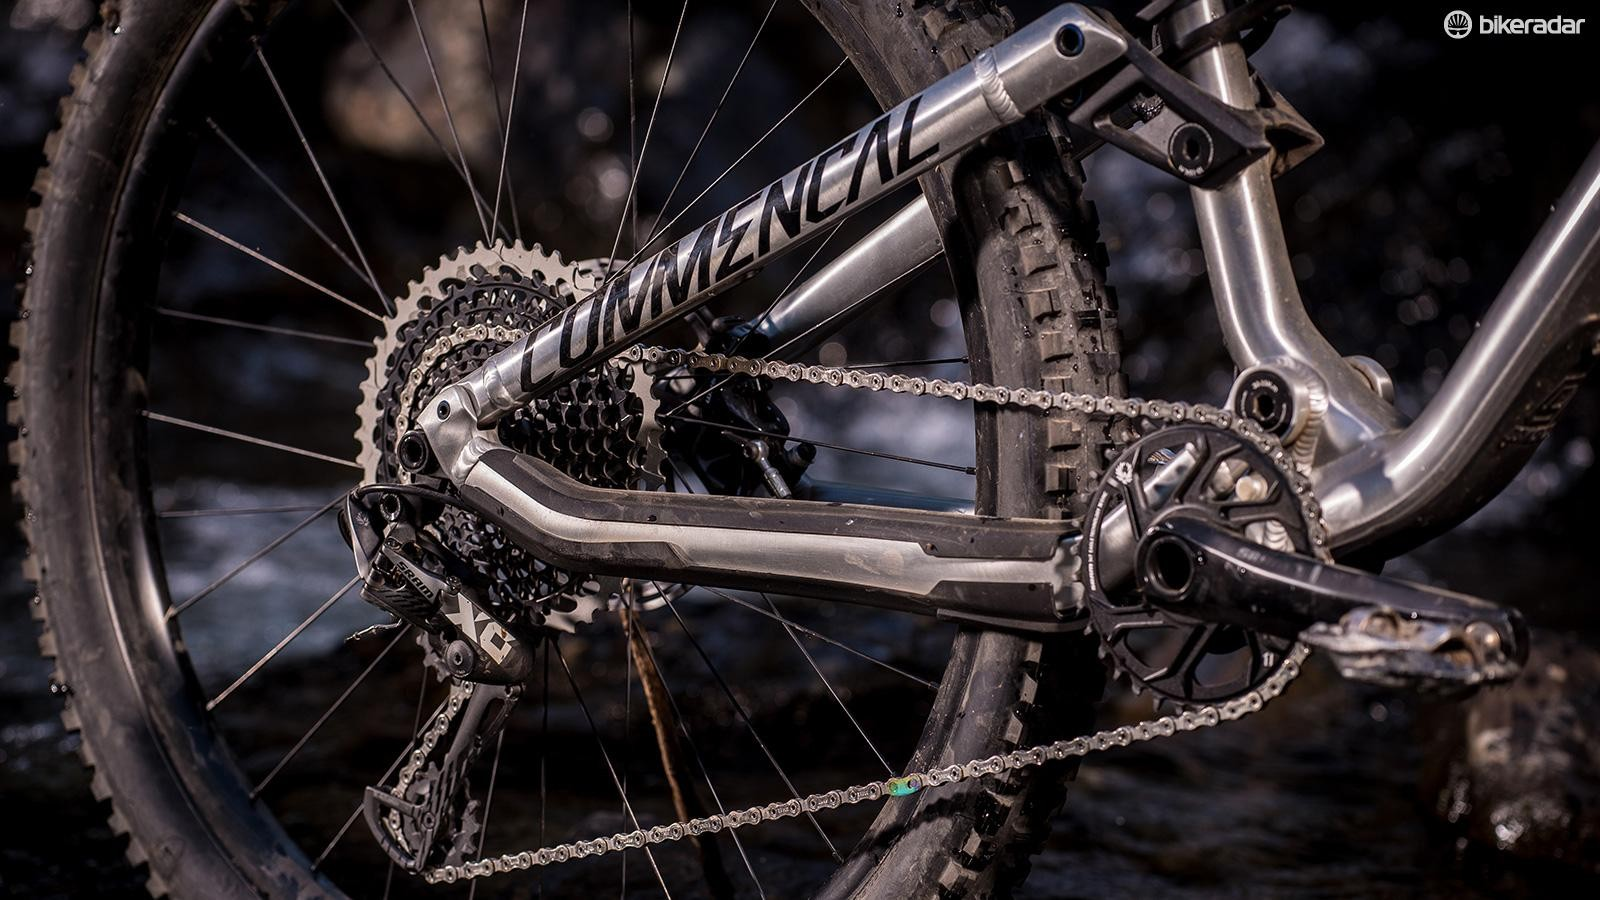 SRAM XO1 Eagle does the shifting business